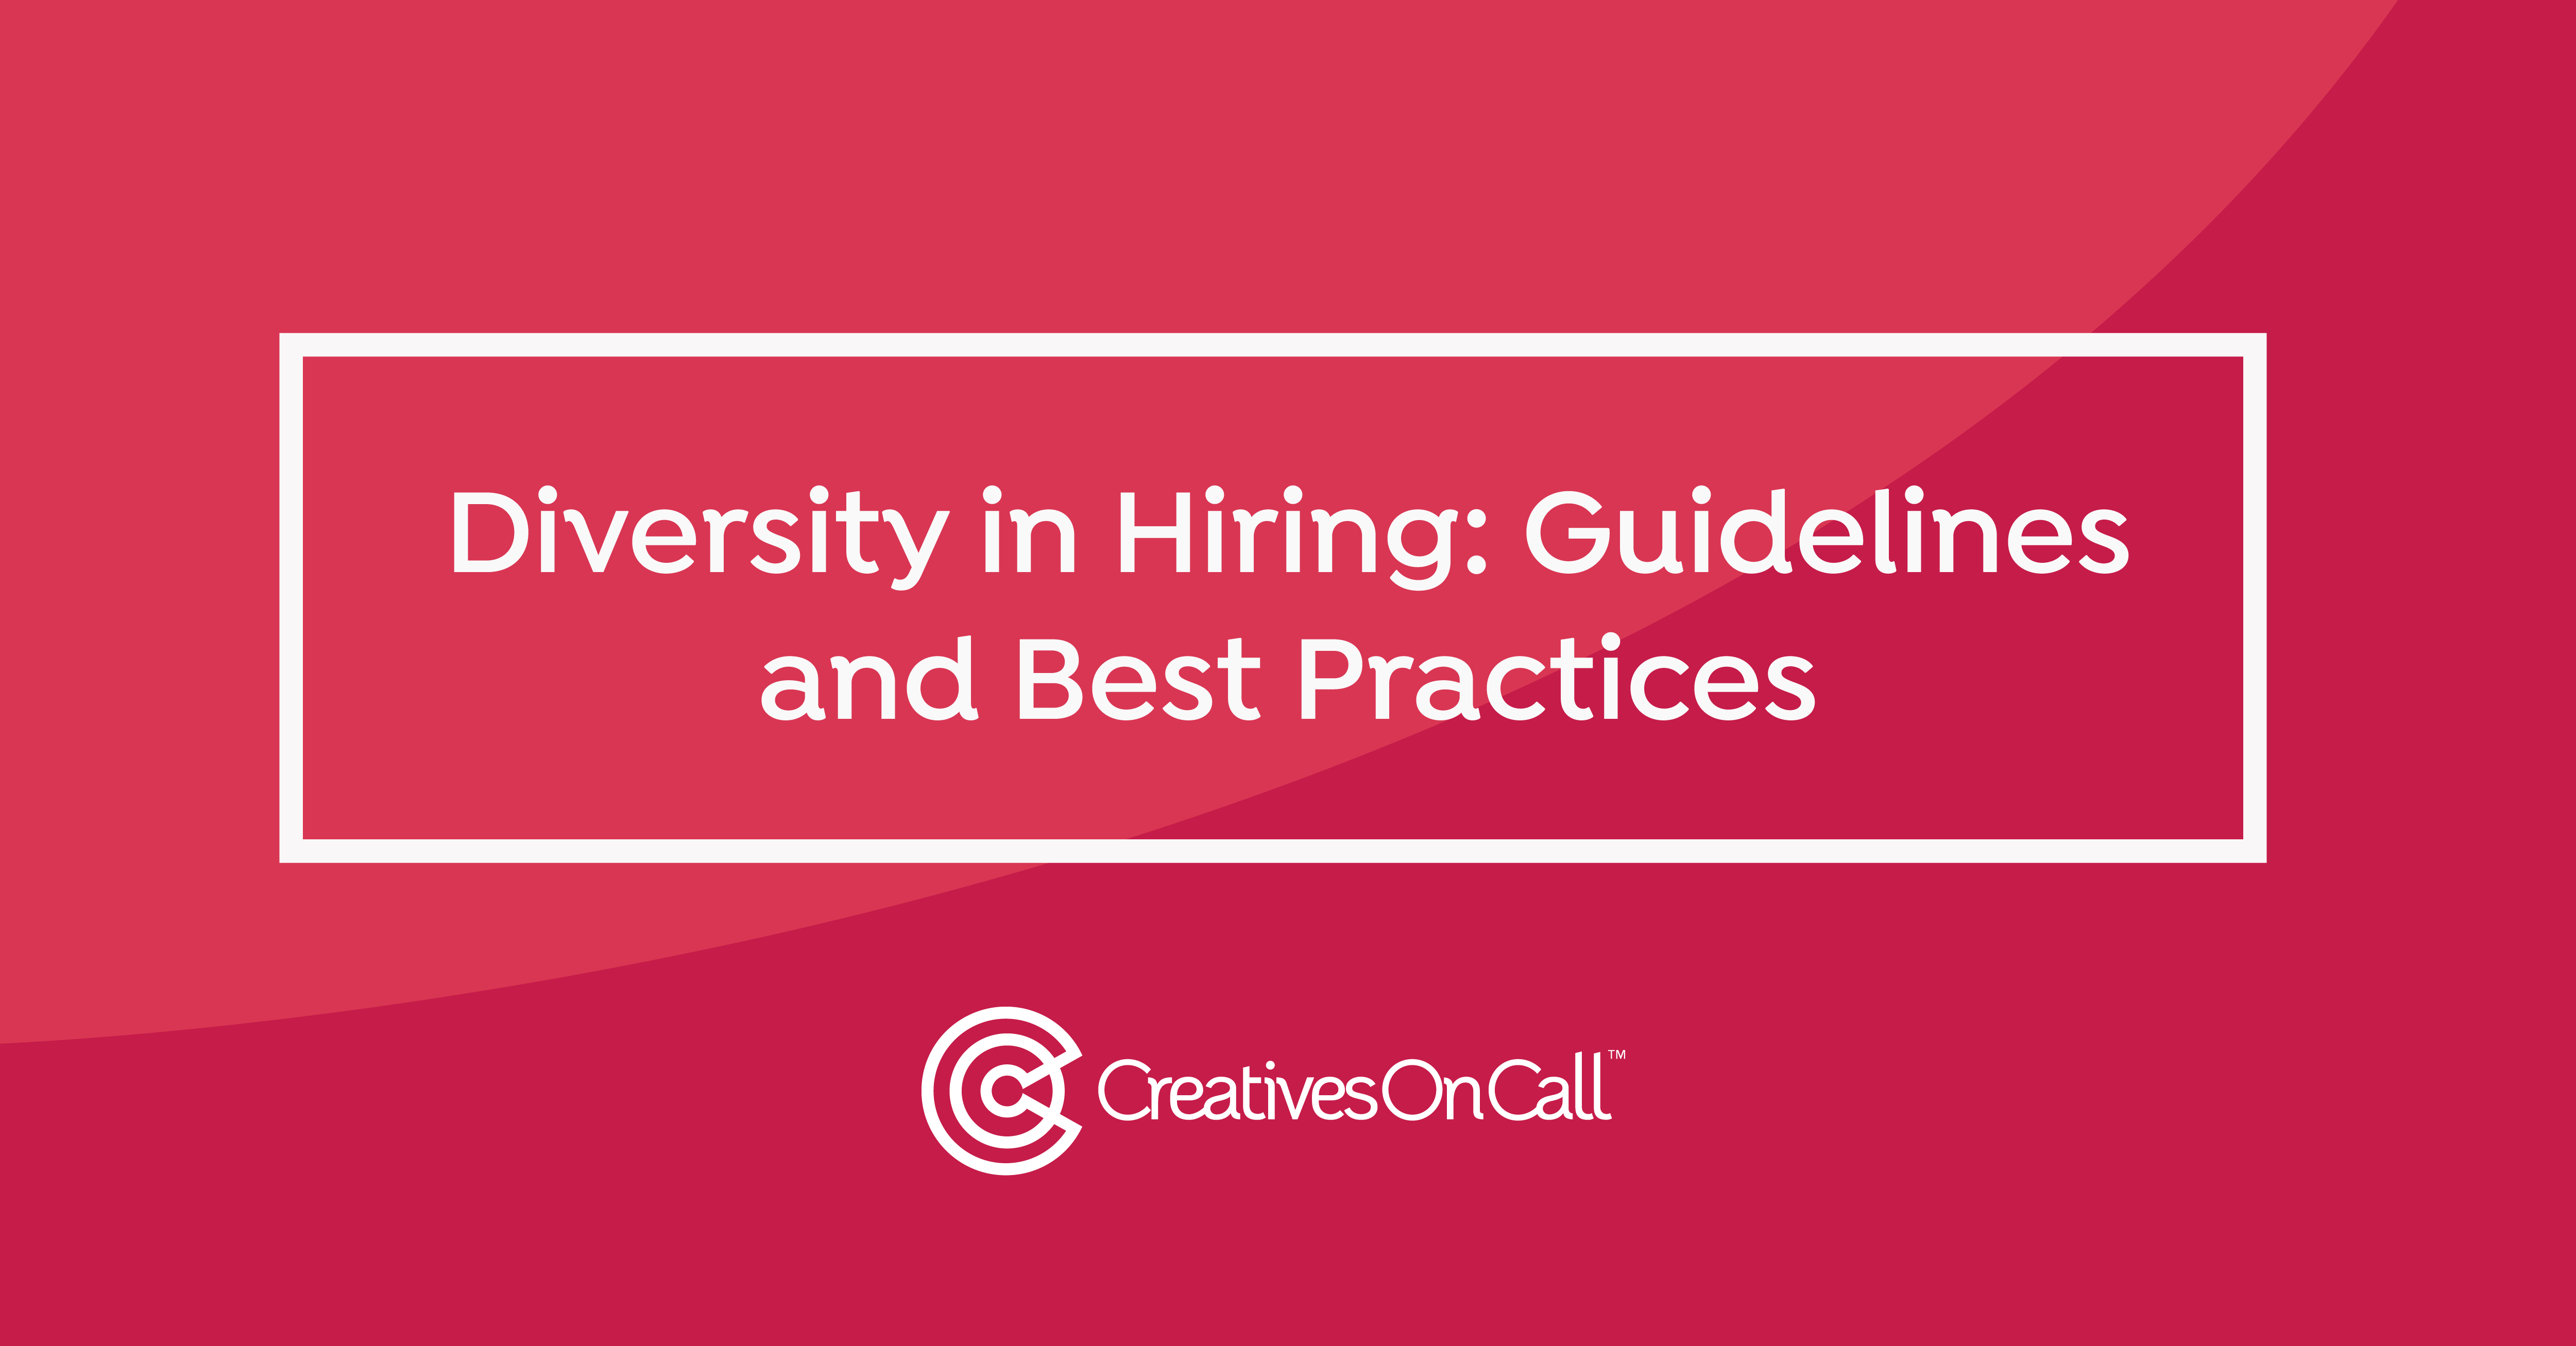 Diversity in Hiring: Guidelines and Best Practices